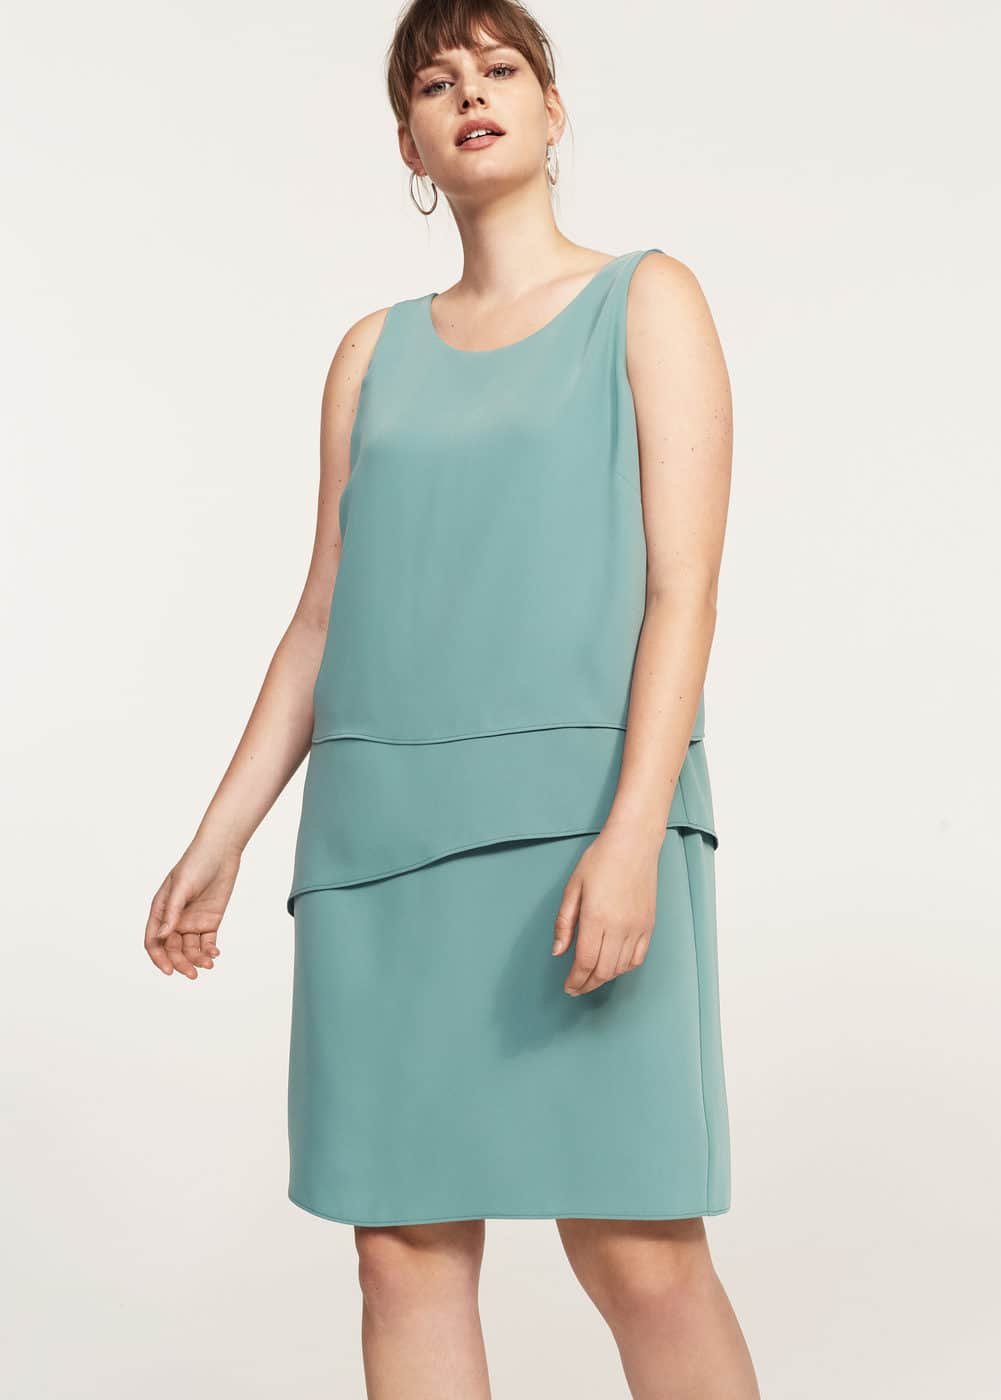 Midi-kleid mit volants | VIOLETA BY MANGO